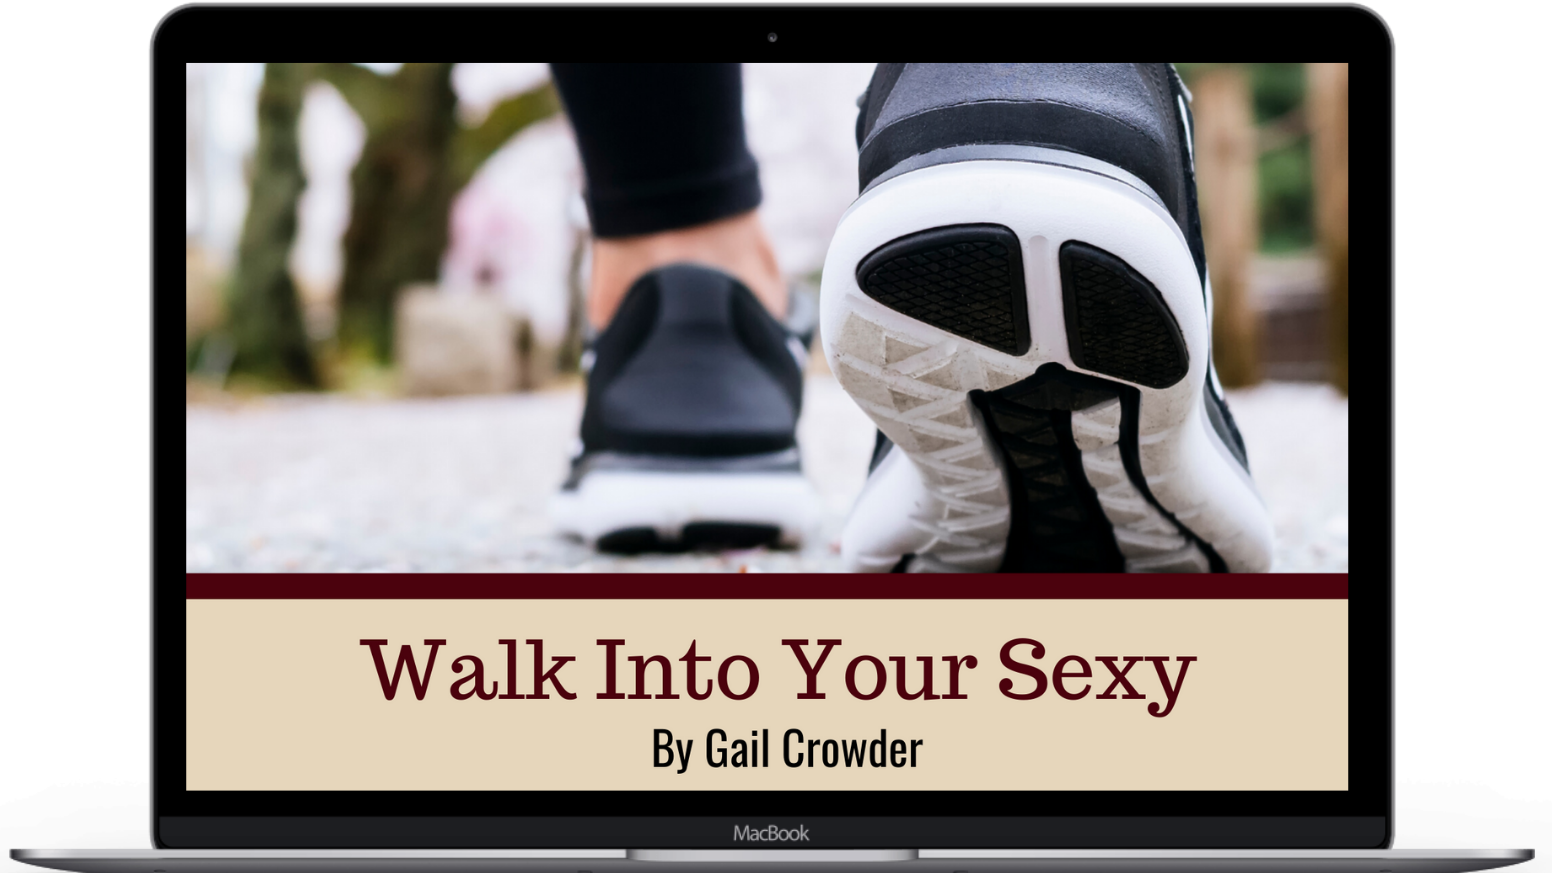 Walk Into Your Sexy